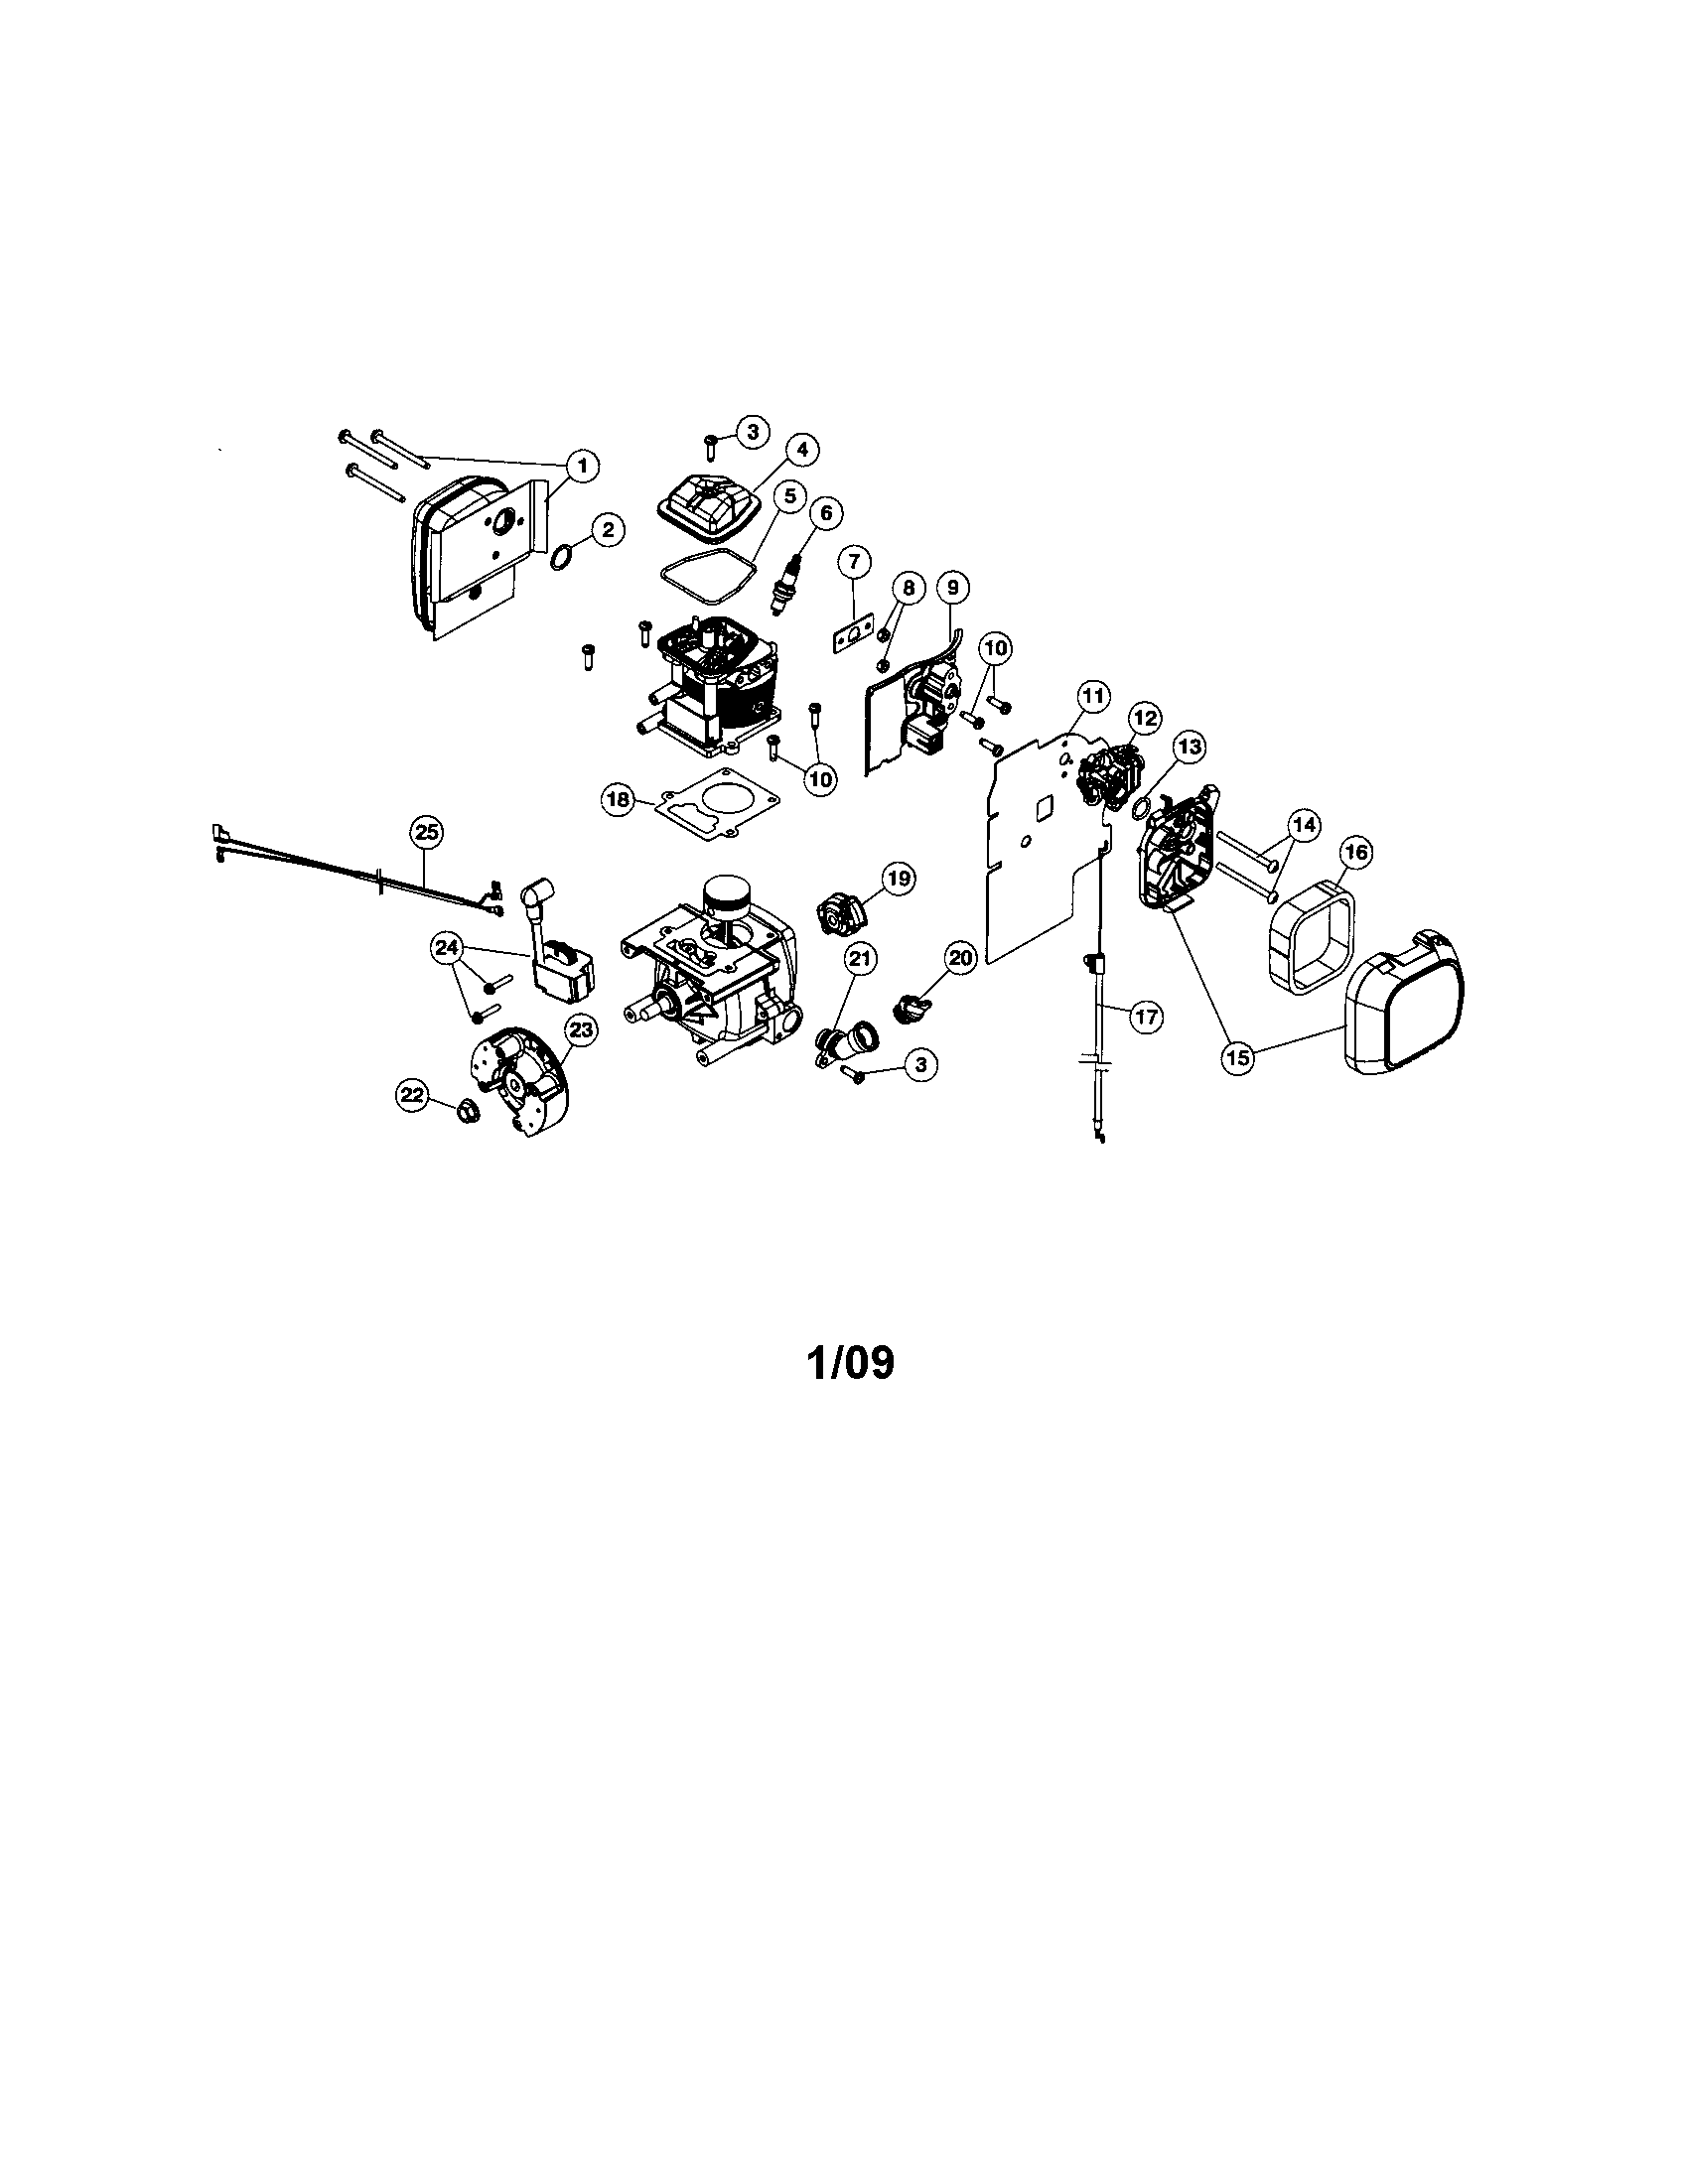 26 Craftsman Leaf Blower Carburetor Diagram